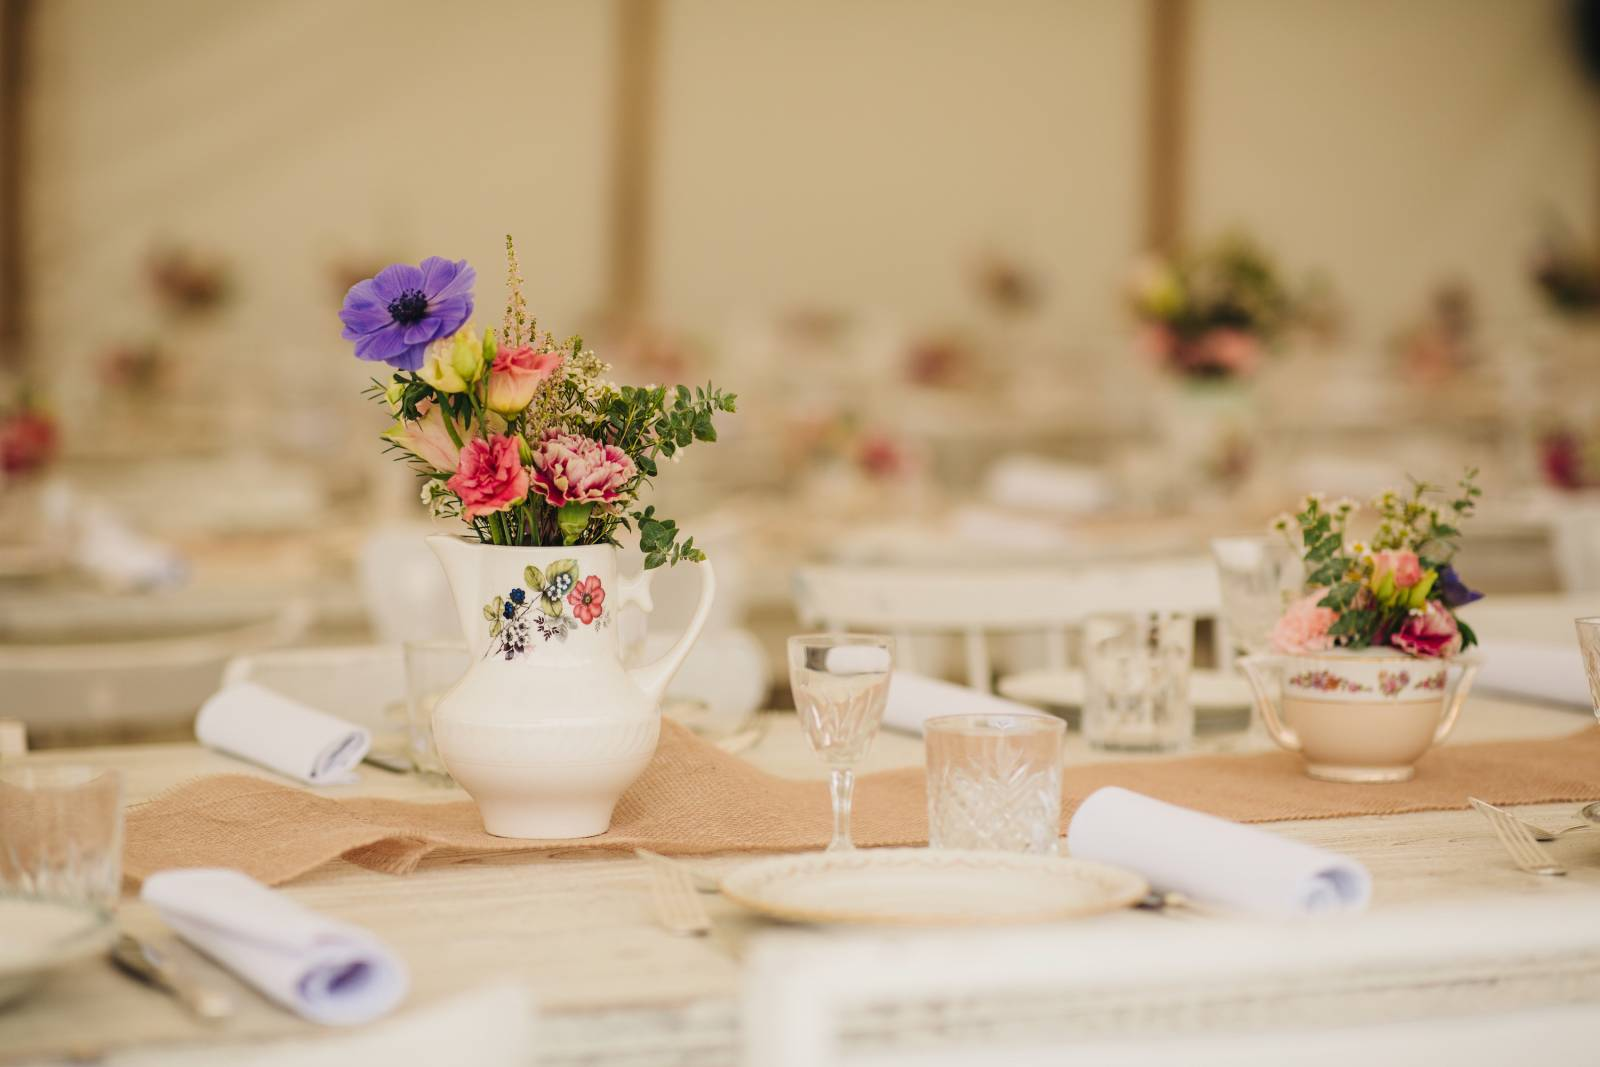 Be Your Guest - Wedding Planner - House of Weddings05-TABLE-2019-Cedric Demeester